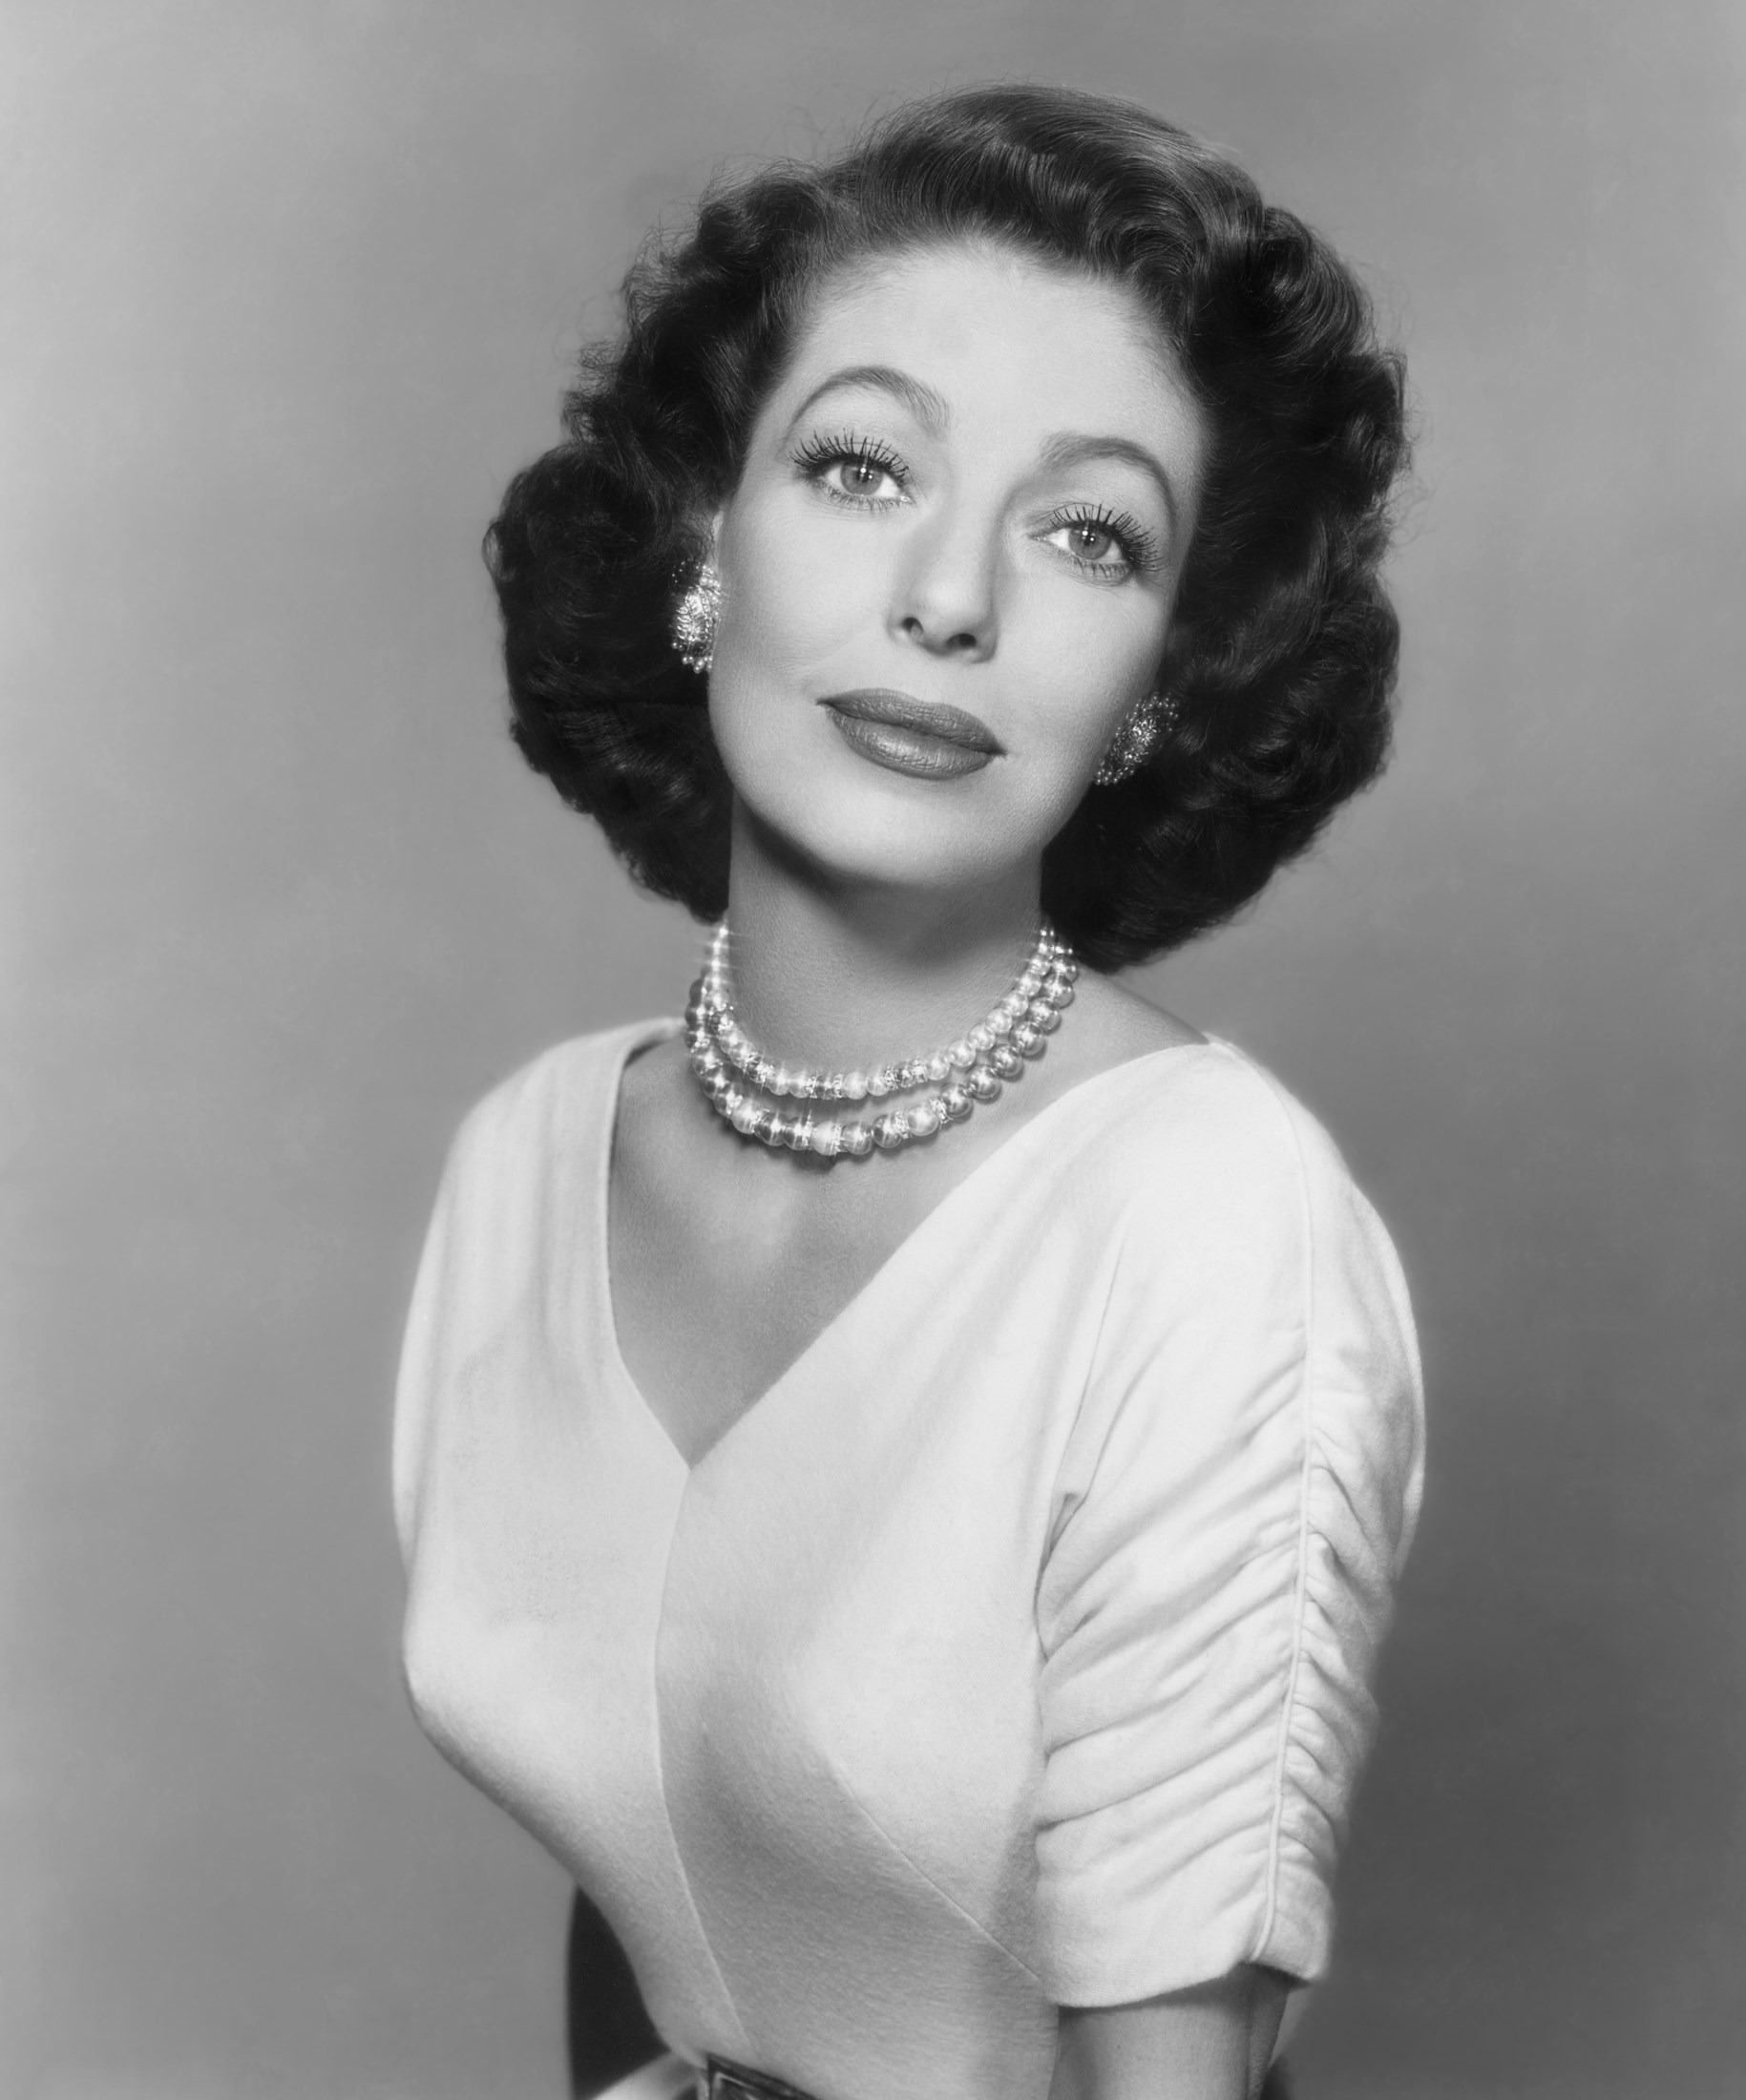 Loretta Young | Known people - famous people news and biographies